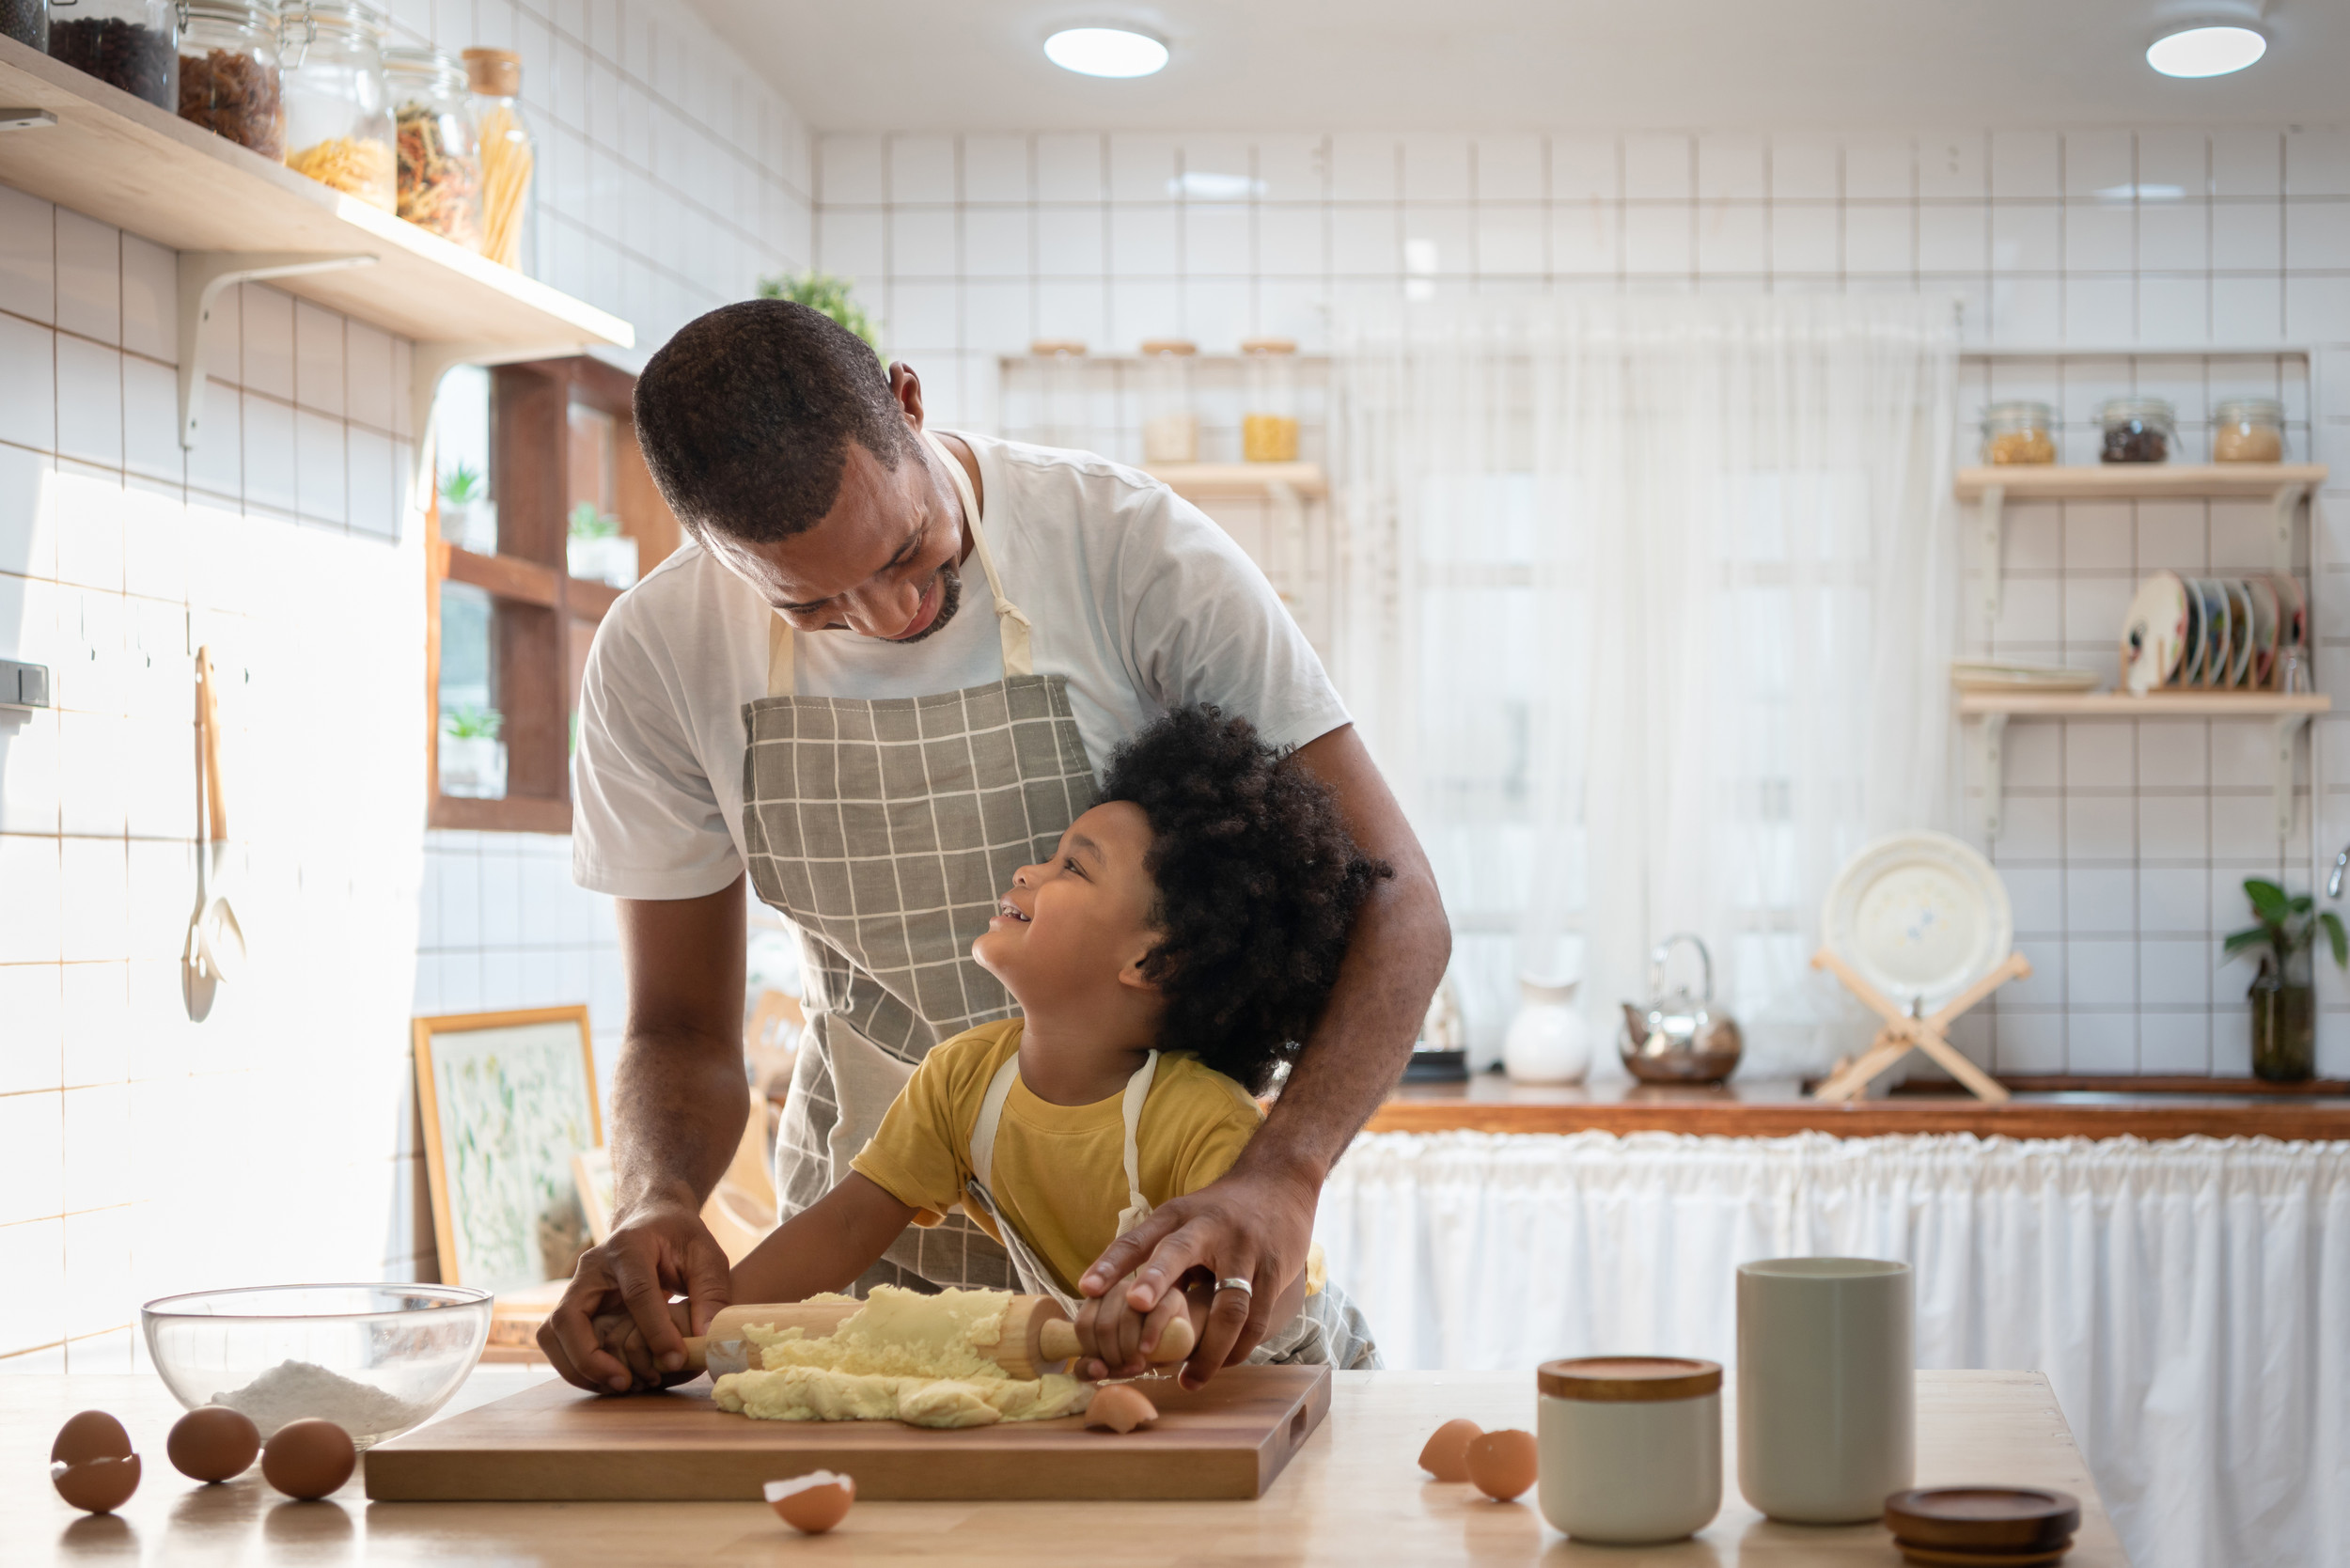 At age 2, my son has more money in the bank than I did at 18, and it's part of my plan to build generational wealth